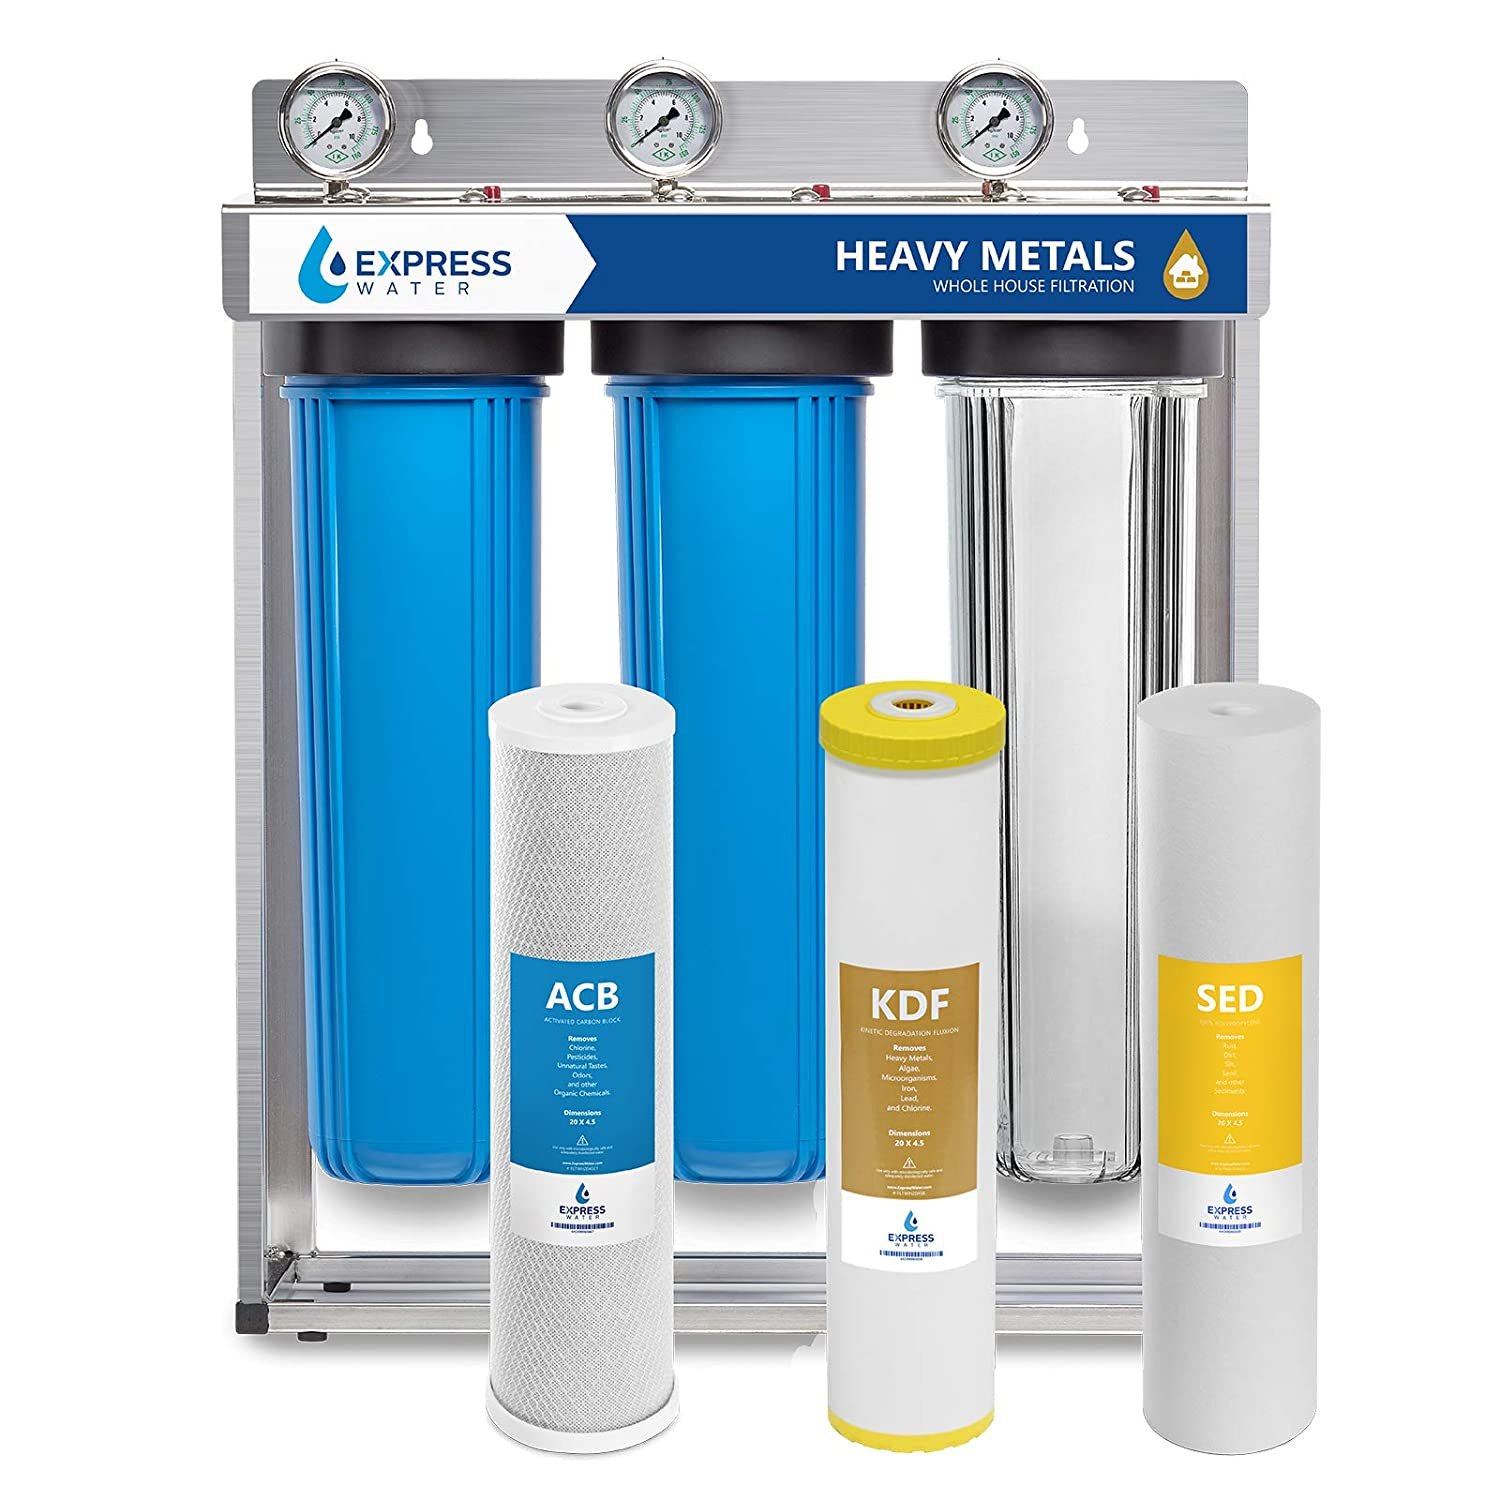 Express Water 3-Stage Water Filter System